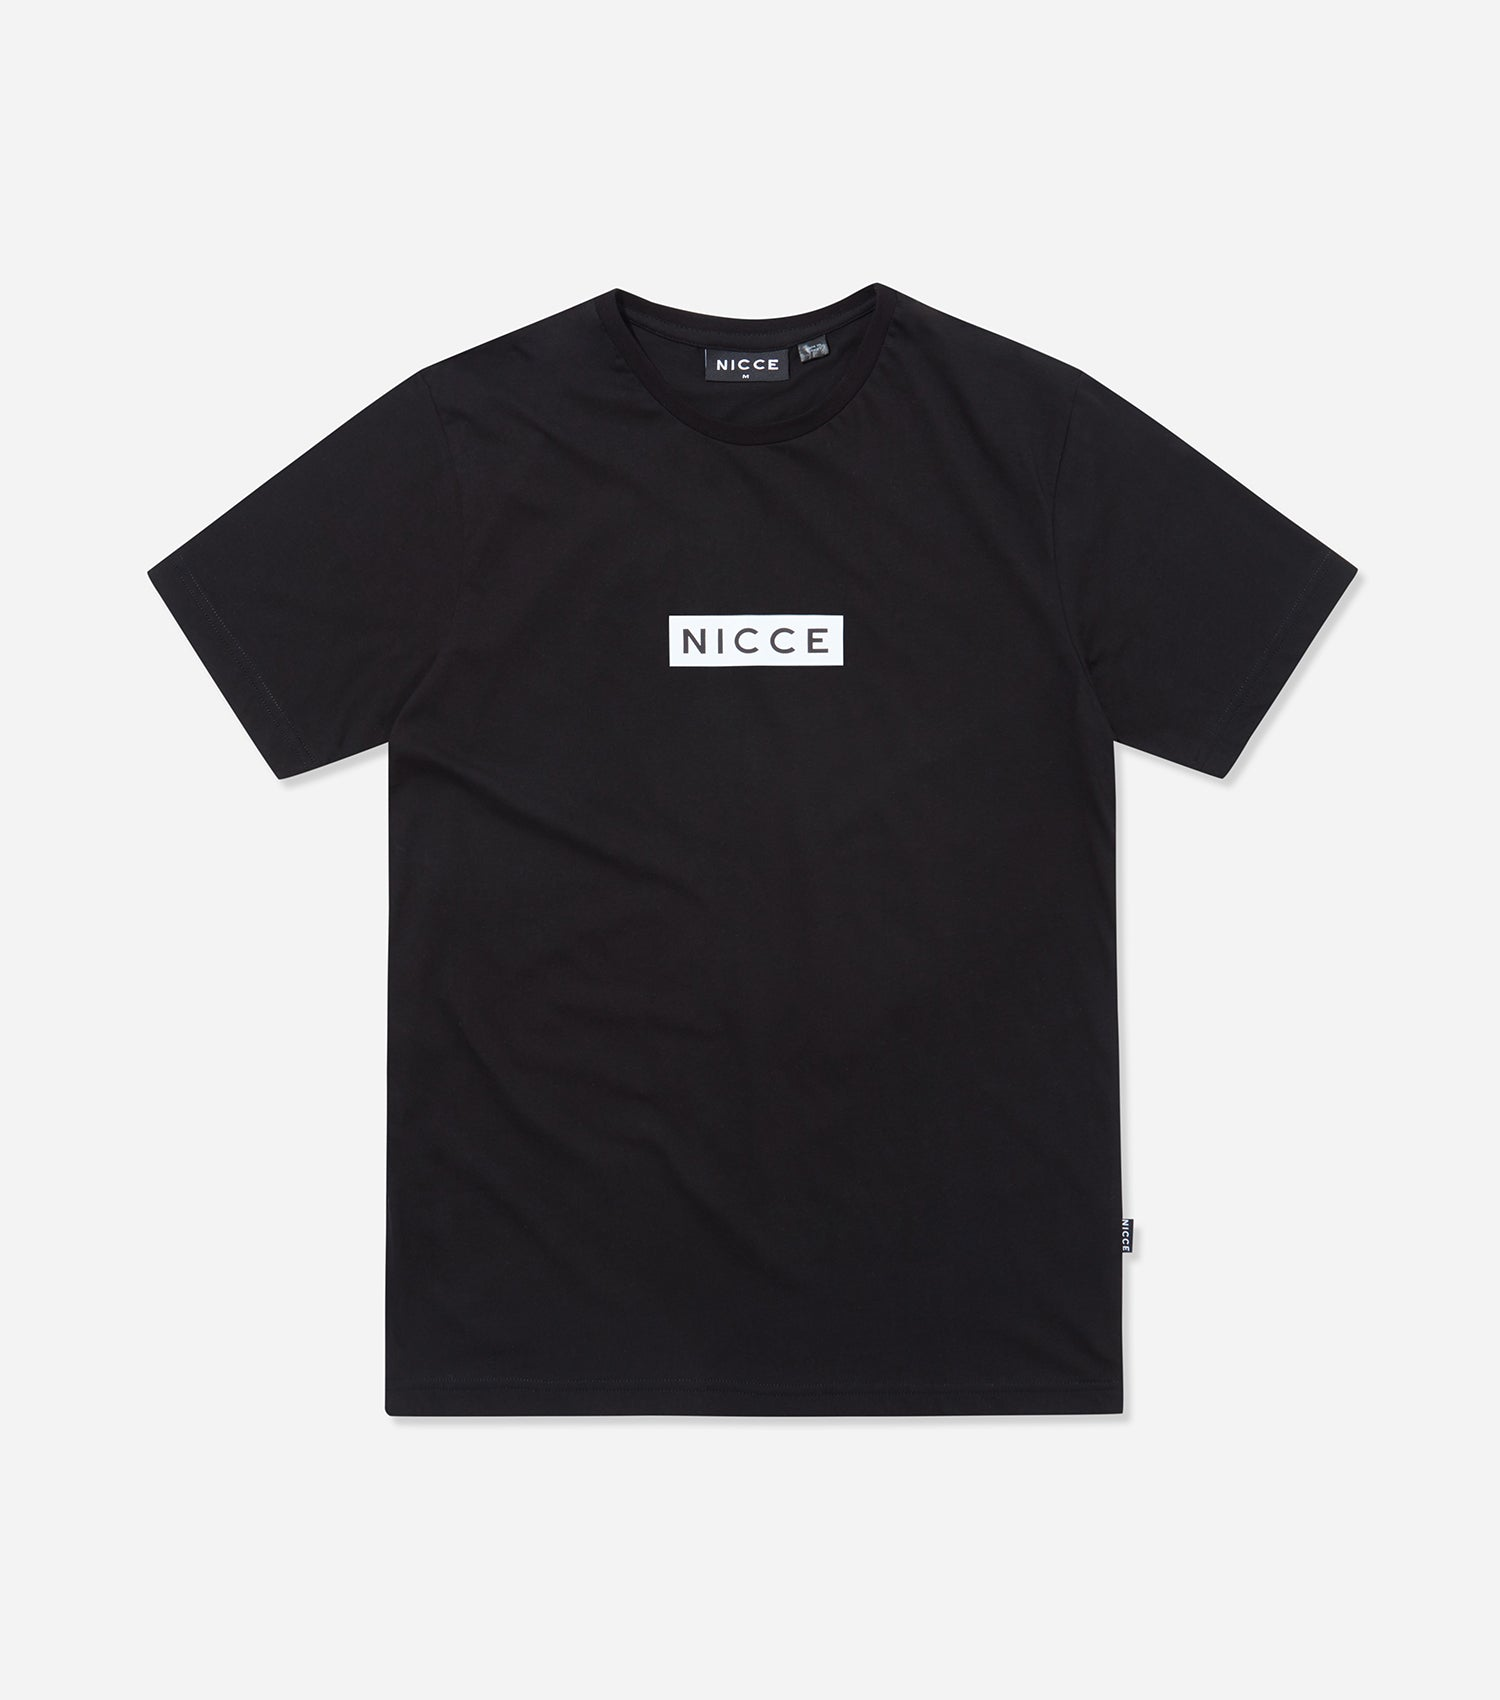 NICCE Mens Base T-Shirt | Black, T-Shirts